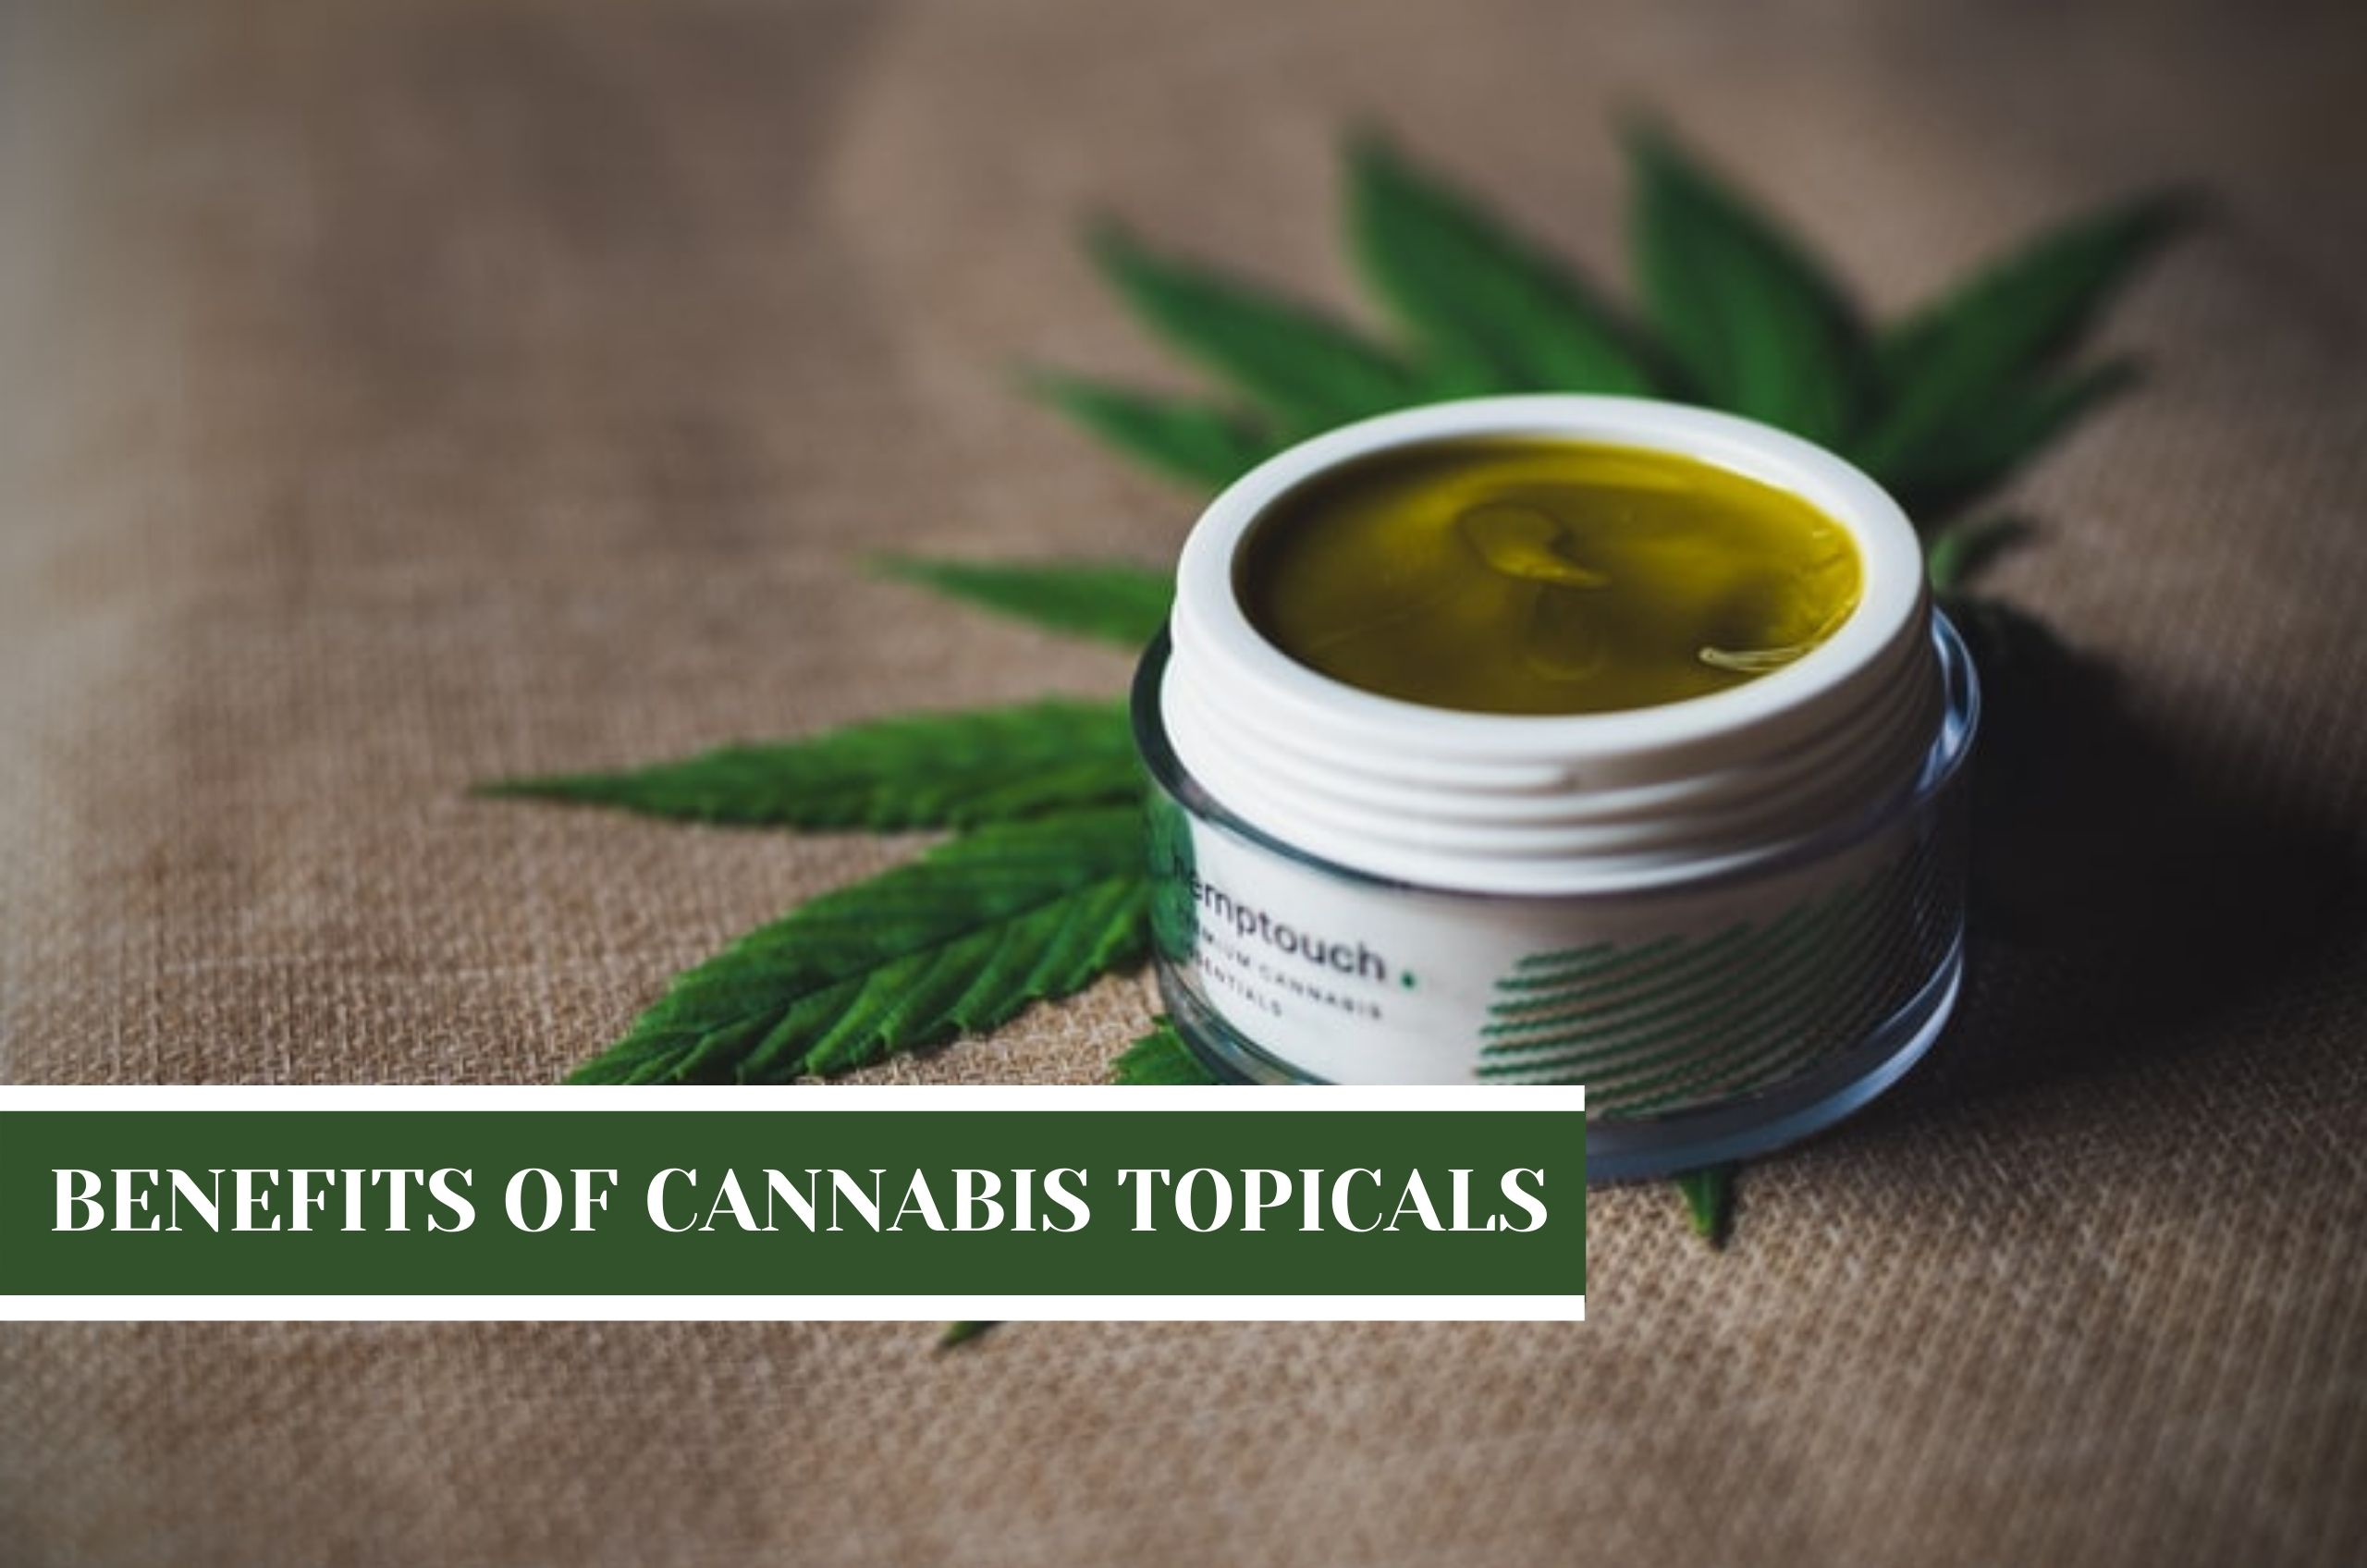 here we have multiple benefits of cannabis topicals